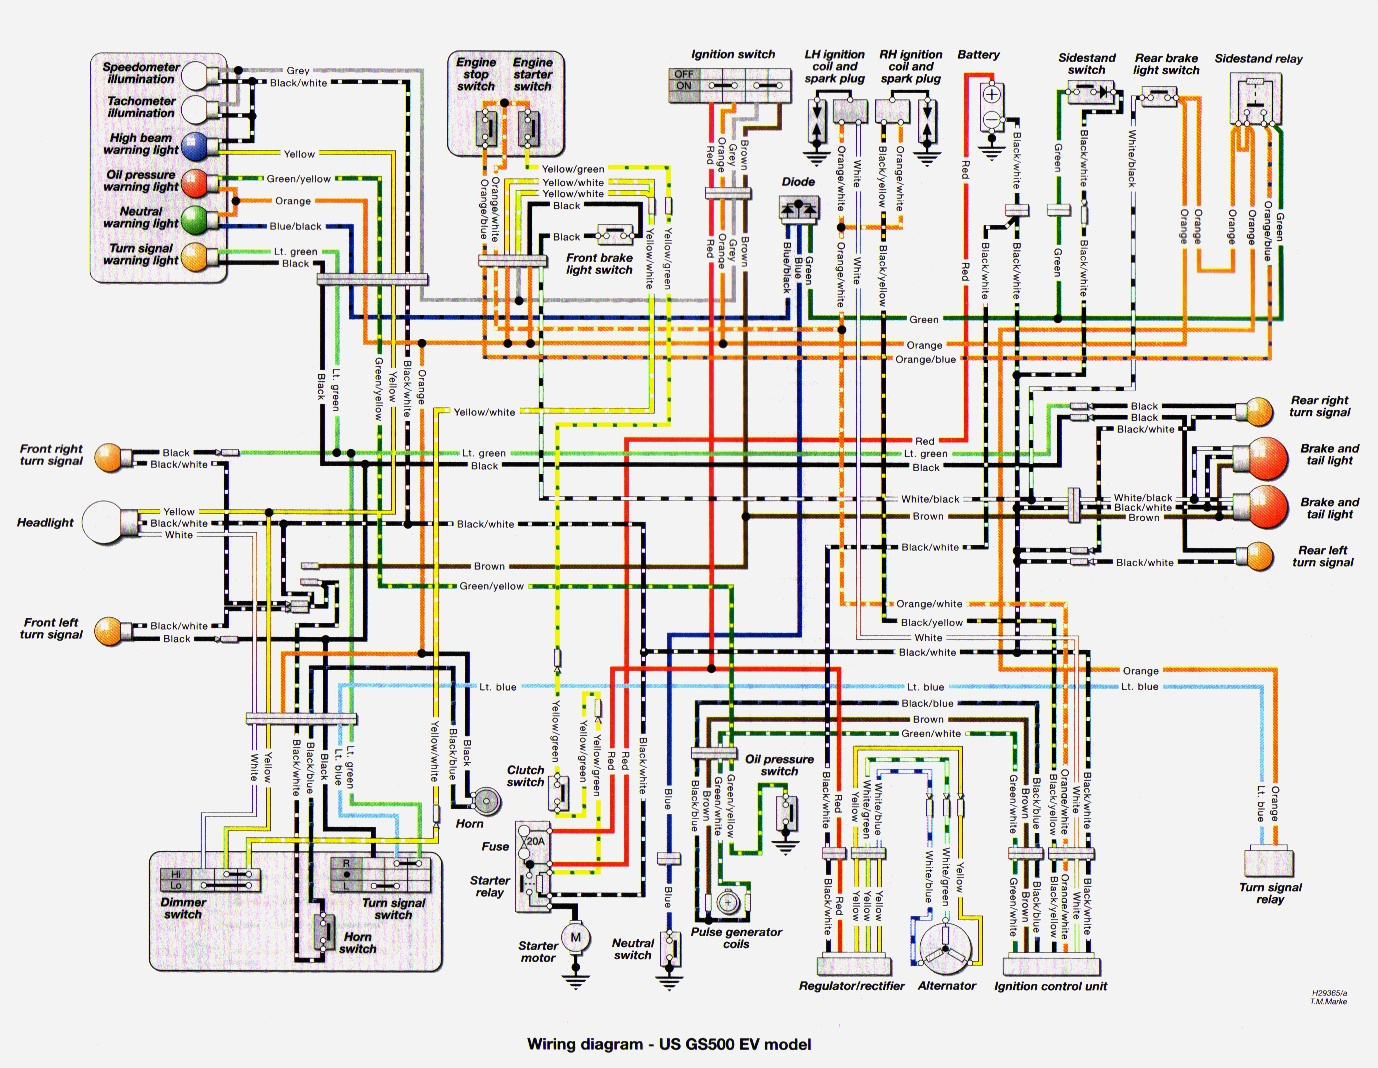 Haynes_WiringDiagram_US_97 wiring diagram of 2003 ford expedition the wiring diagram 2001 ford expedition wiring diagram at bayanpartner.co